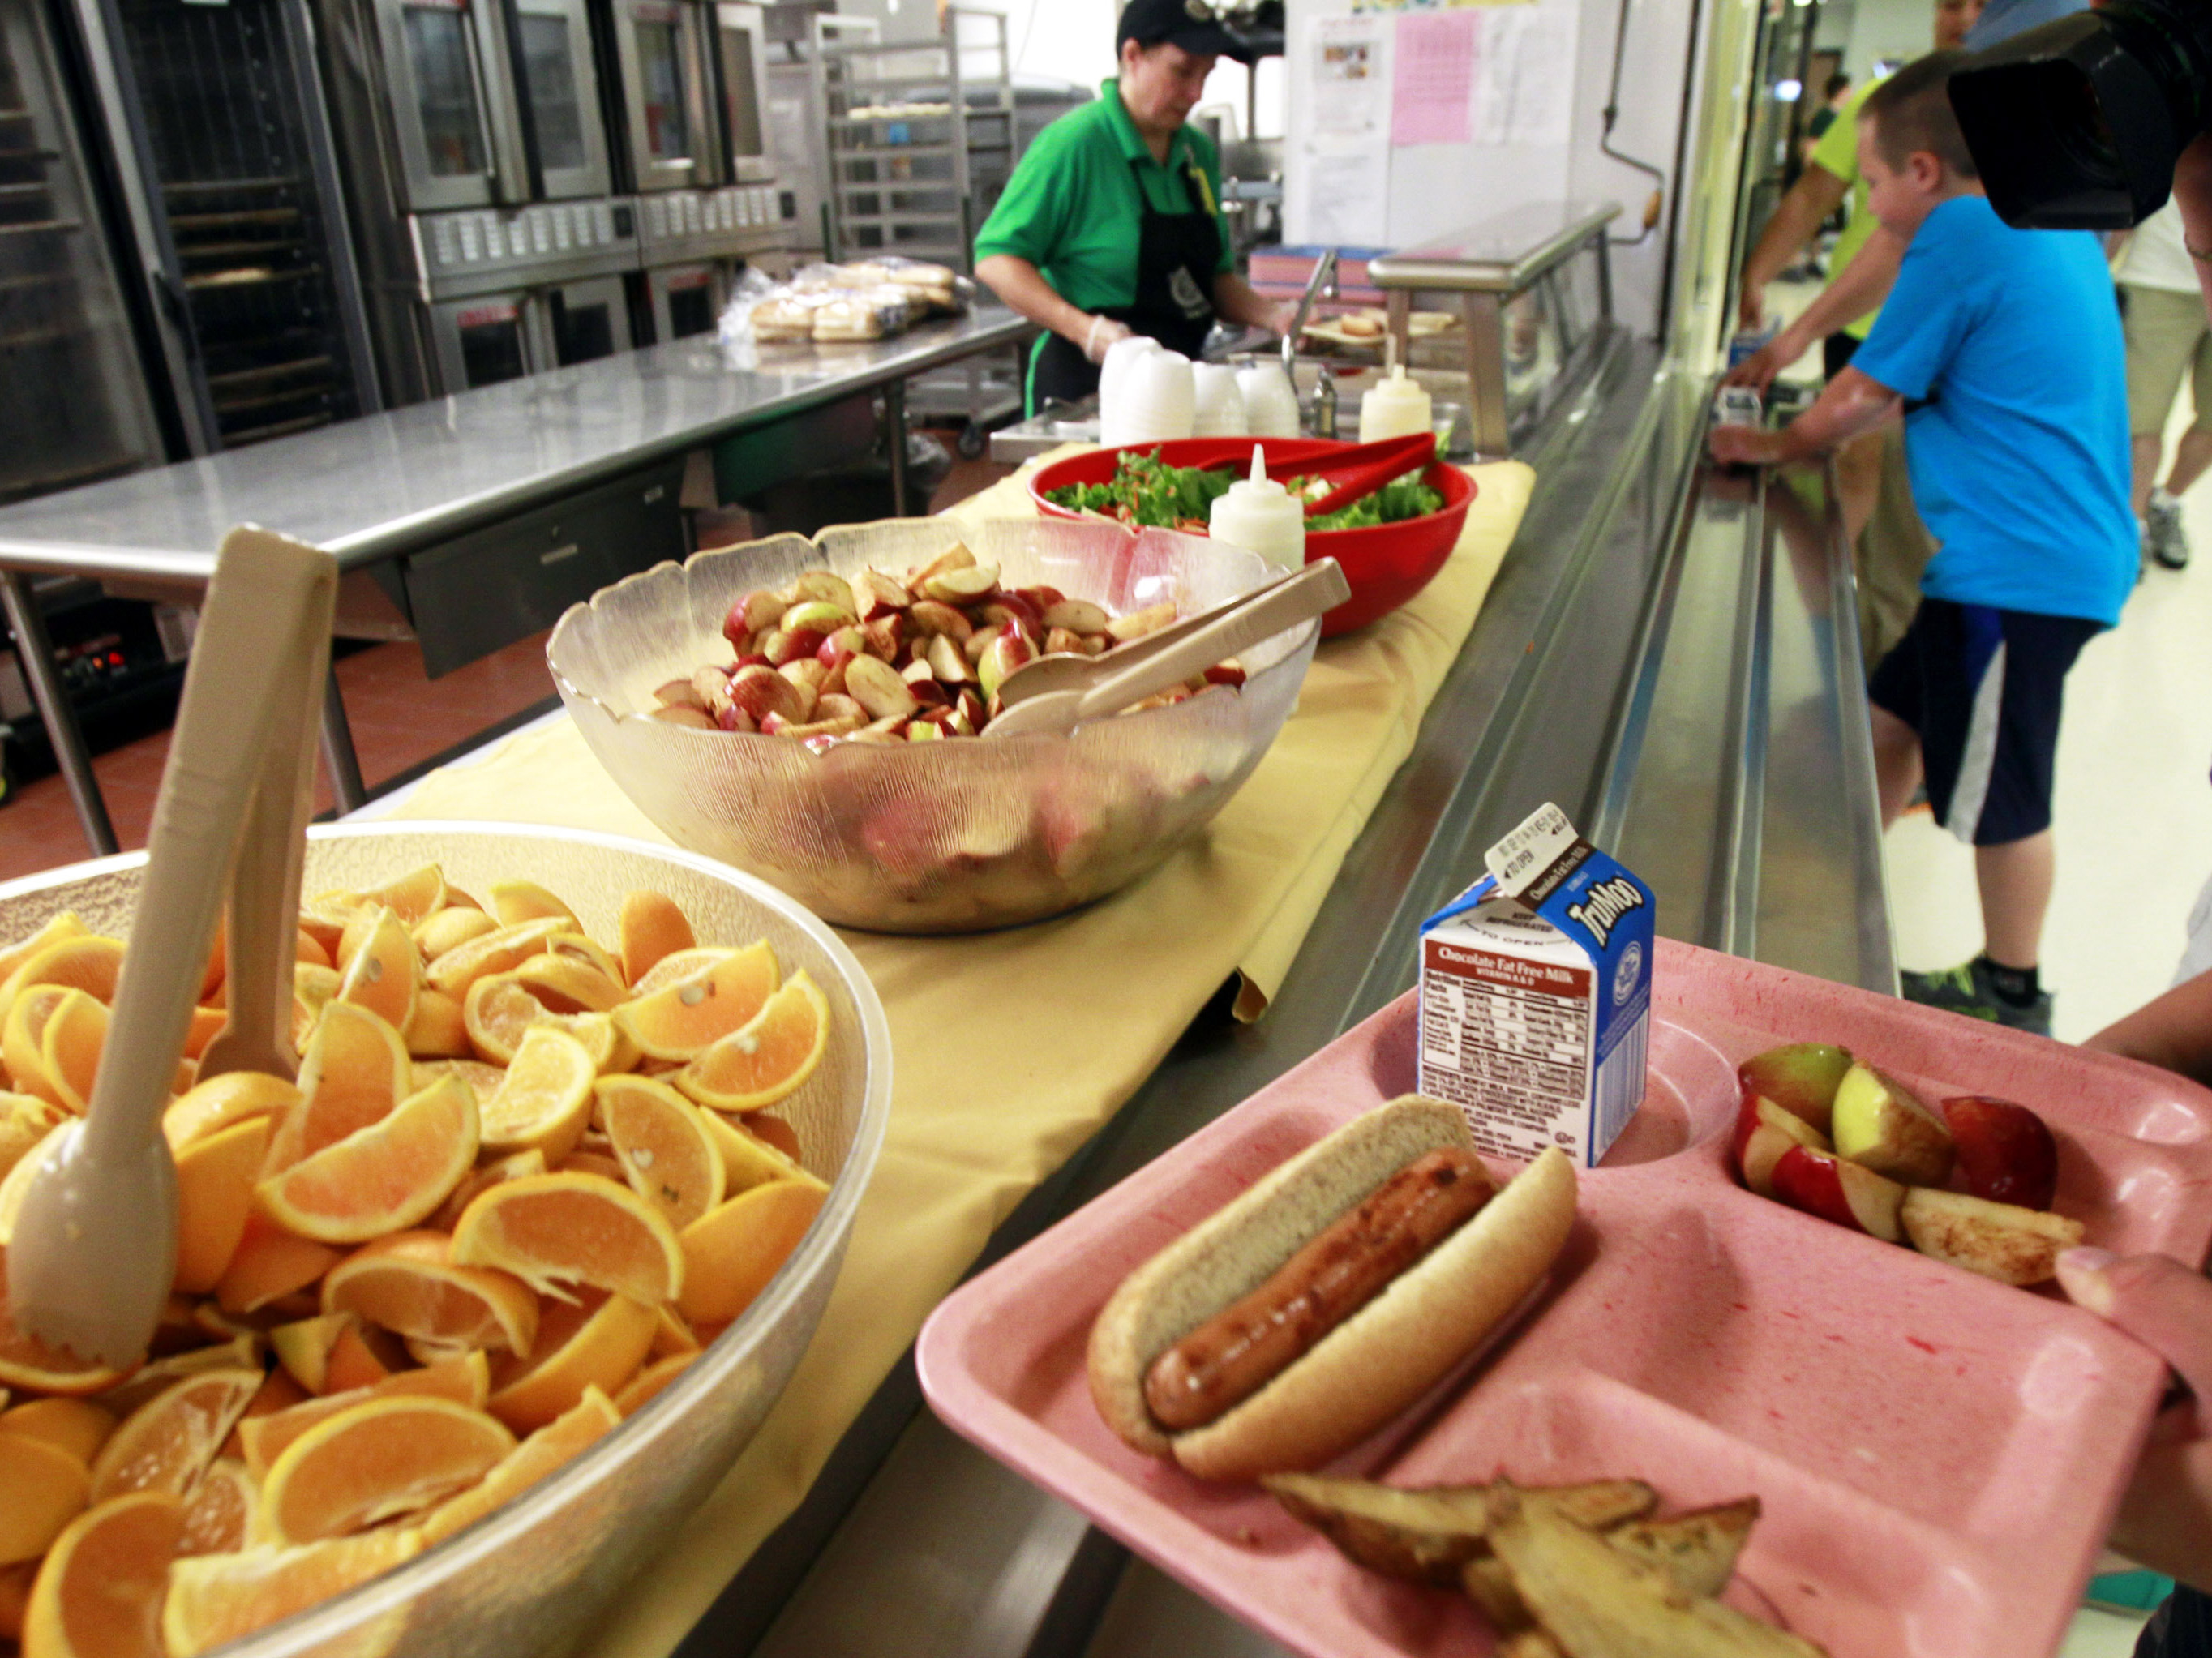 Lawmakers Seek Delay on Healthy Lunch Rules for Schools